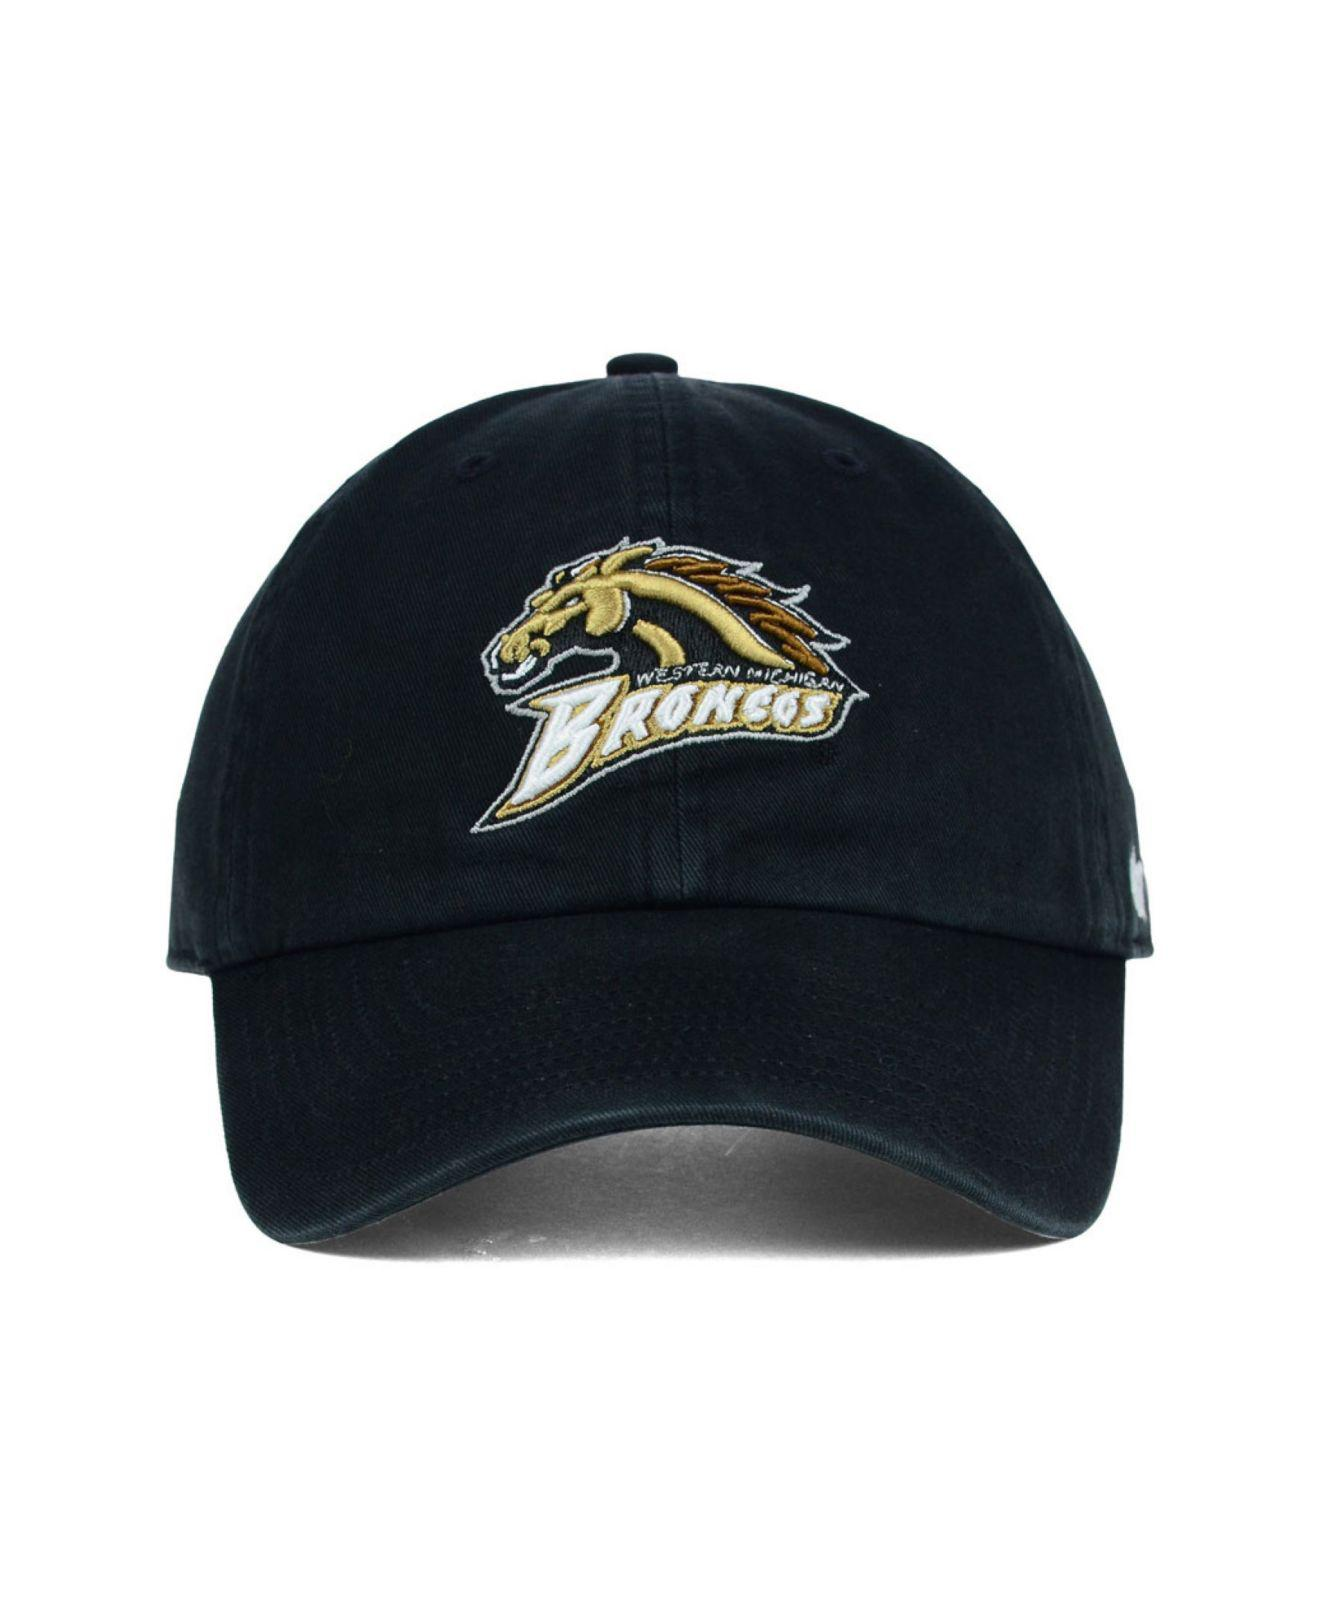 285a81d2 Lyst - 47 Brand Michigan Broncos Clean-up Cap in Black for Men